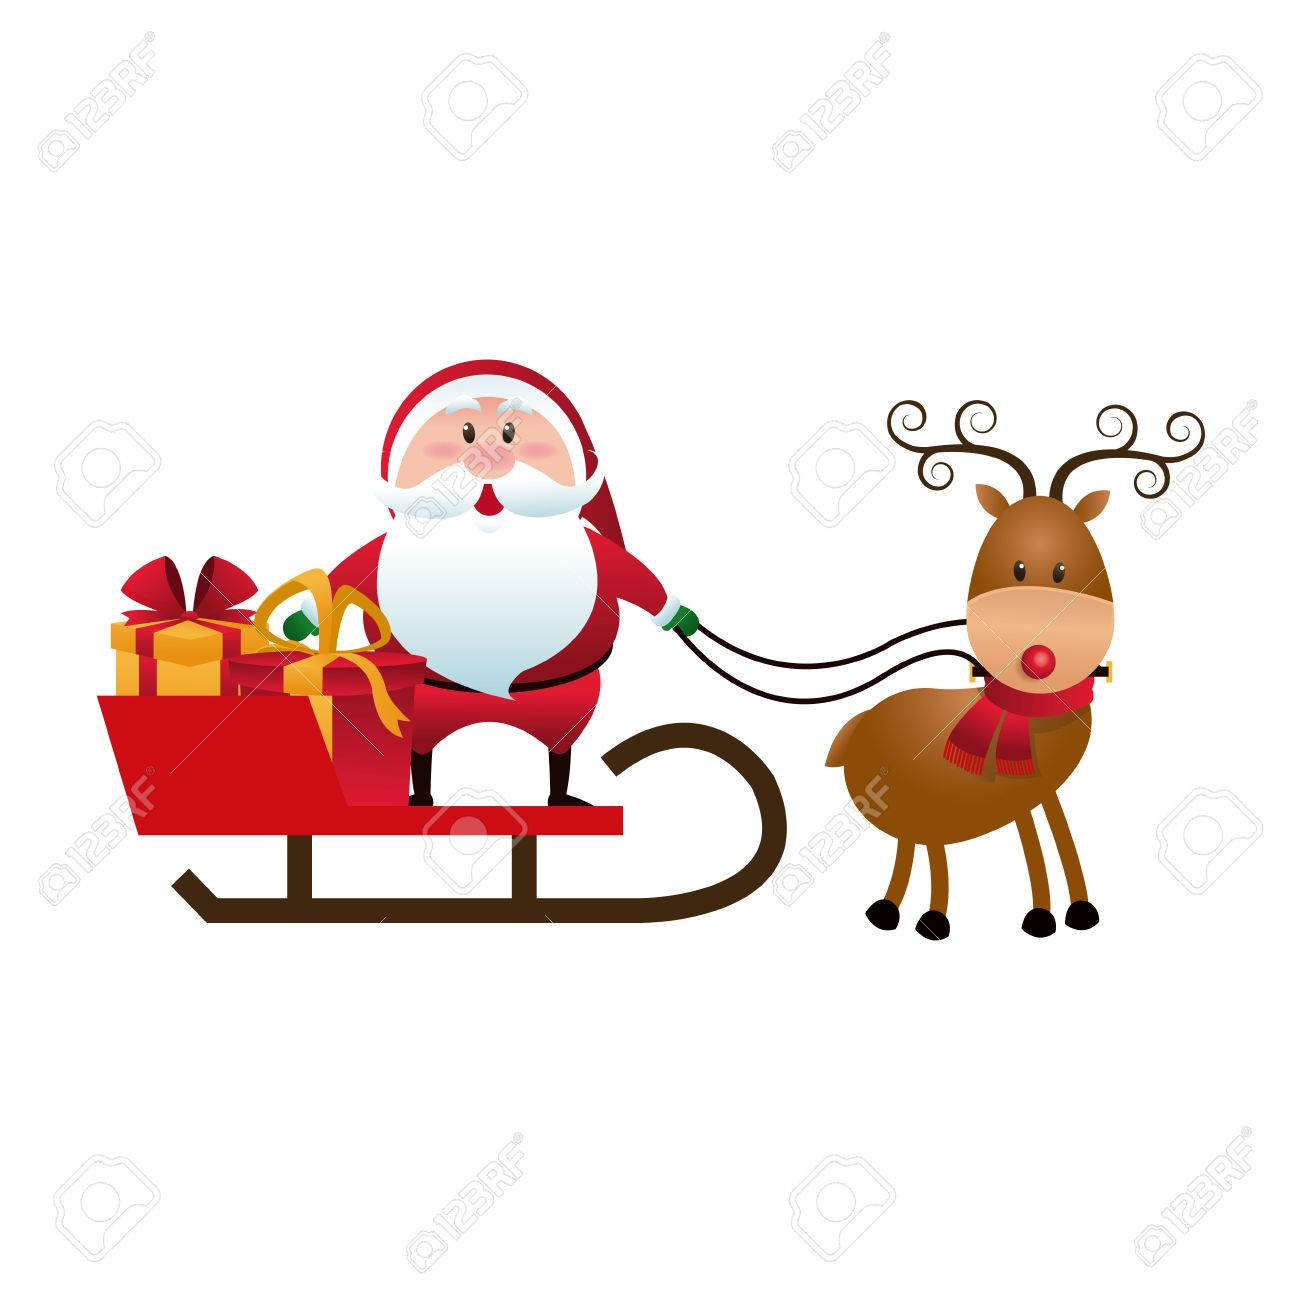 christmas santa claus reindeer sledge gifts cartoon vector illustration royalty free cliparts vectors and stock illustration image 78544846 christmas santa claus reindeer sledge gifts cartoon vector illustration